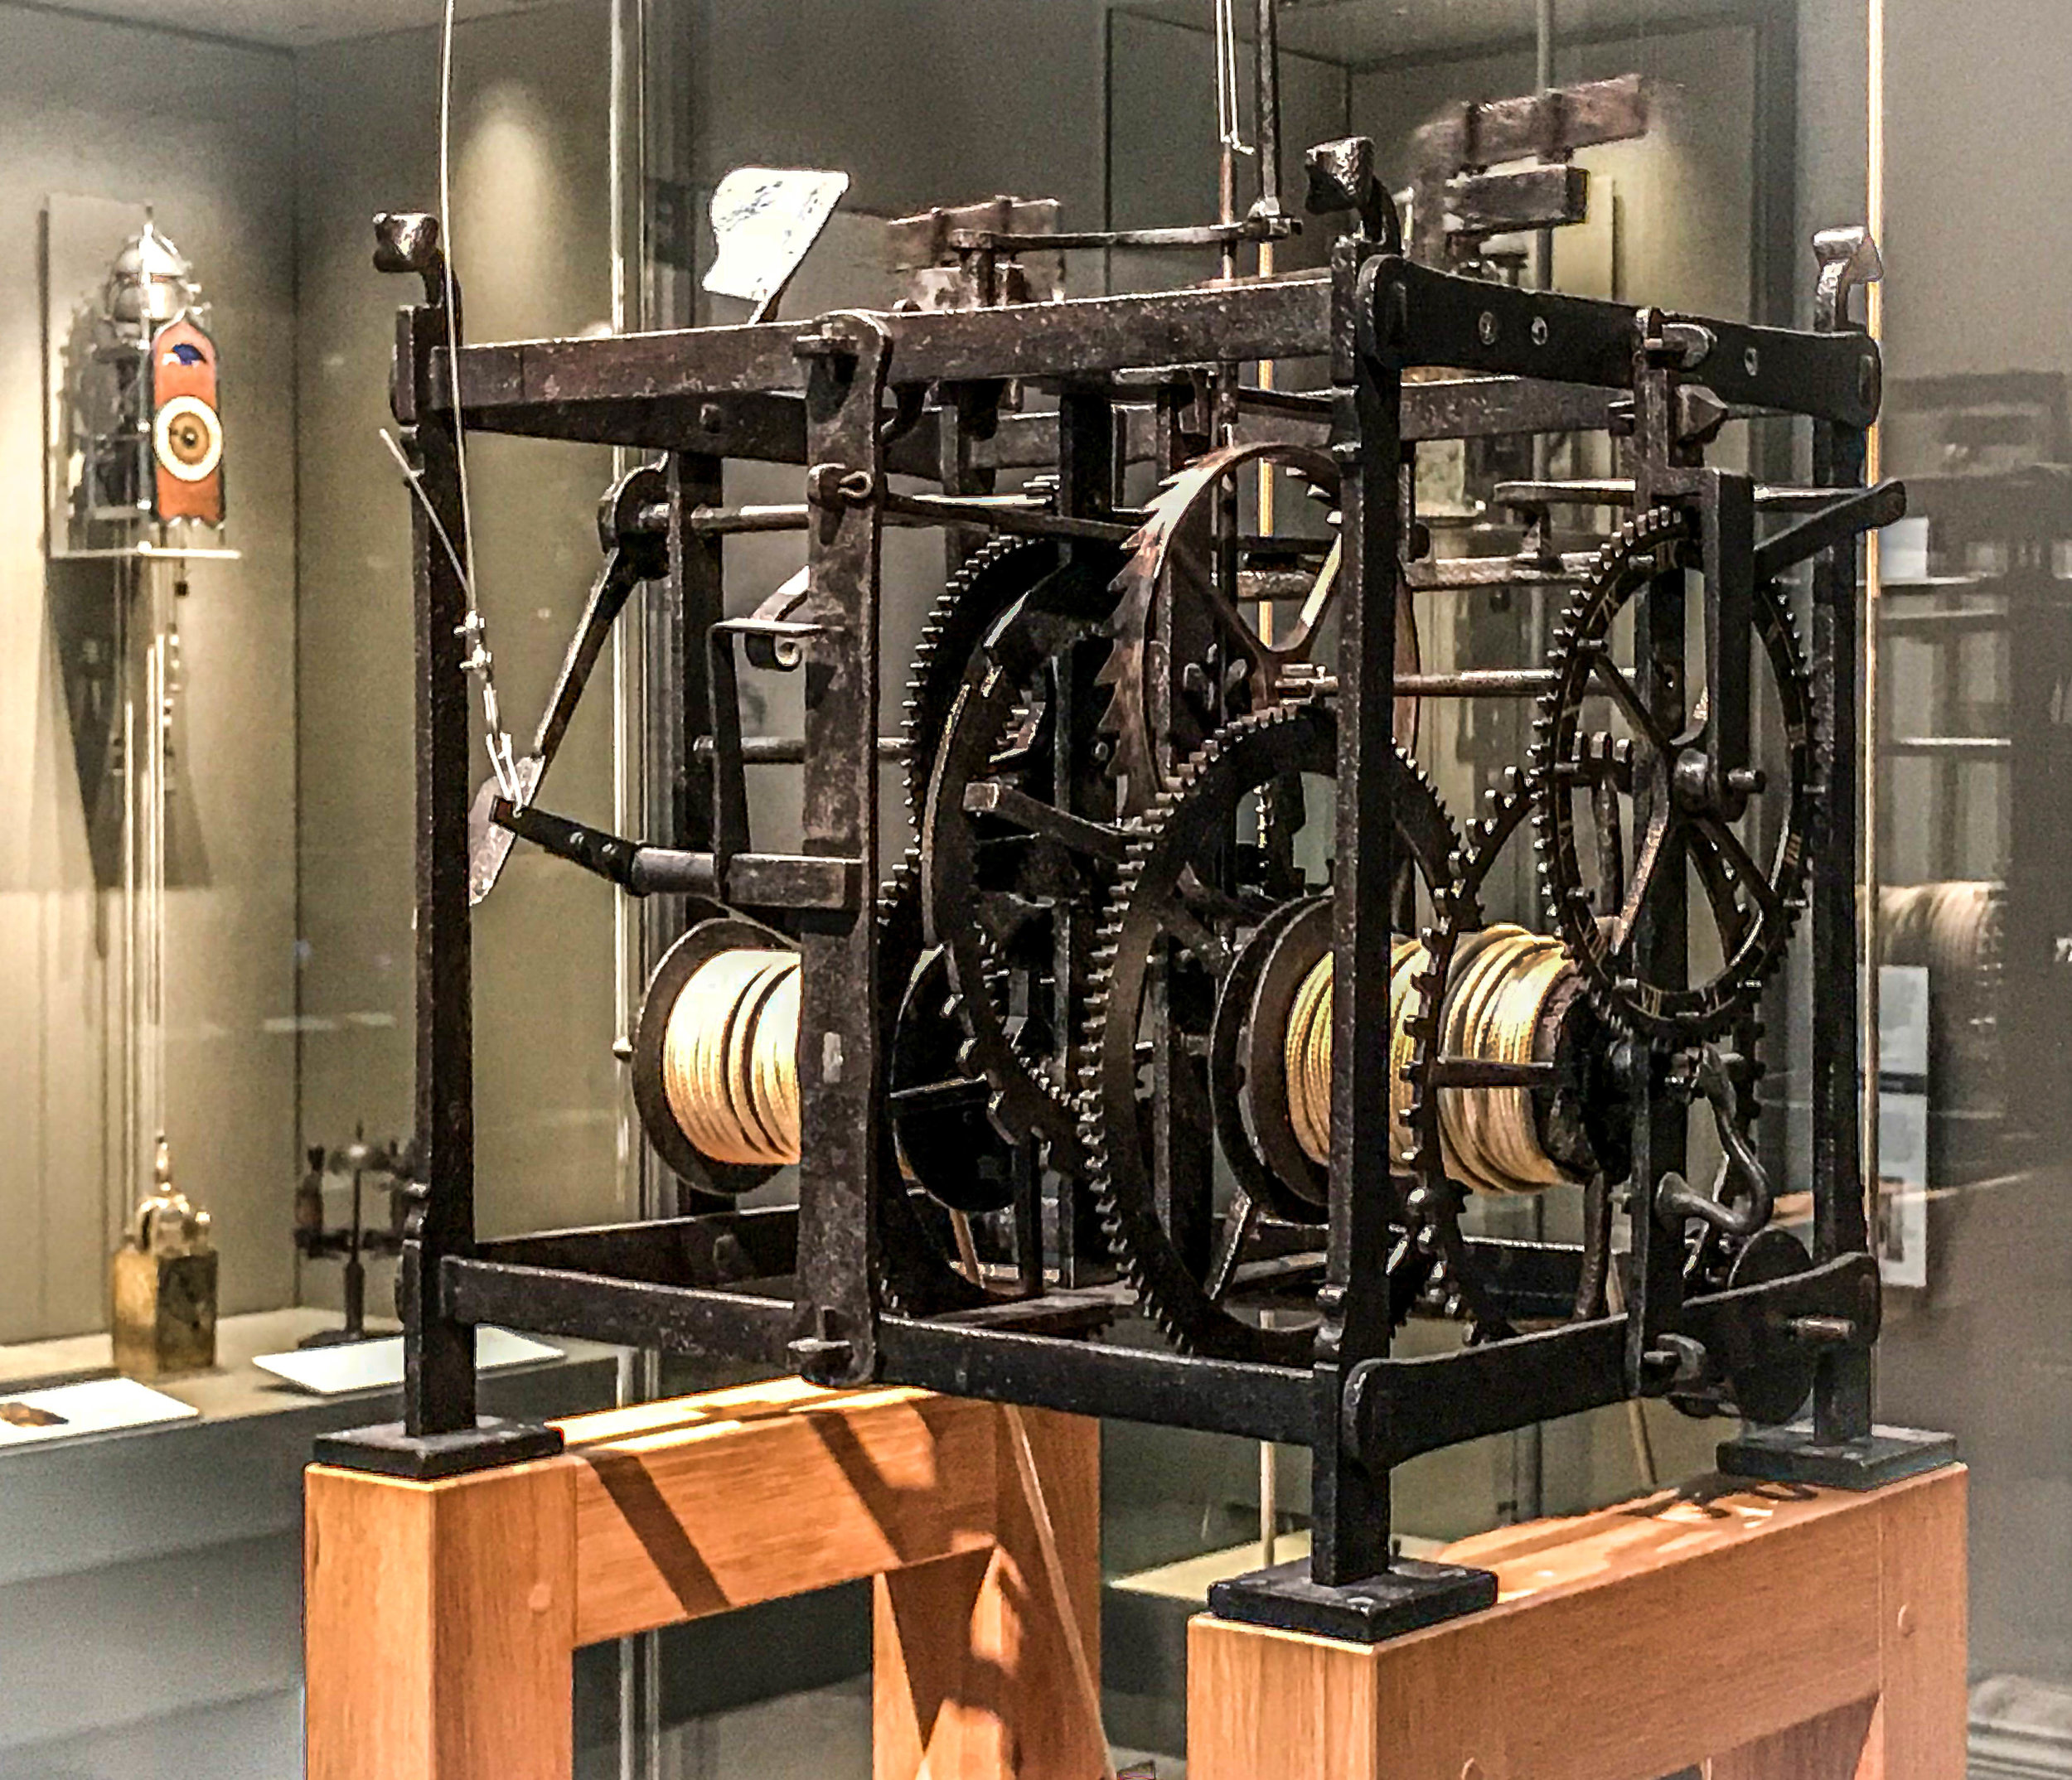 This 300+ year-old clock mechanism is actually operating now, along with video displays that clearly explain the functioning of the five basic components of every clock.